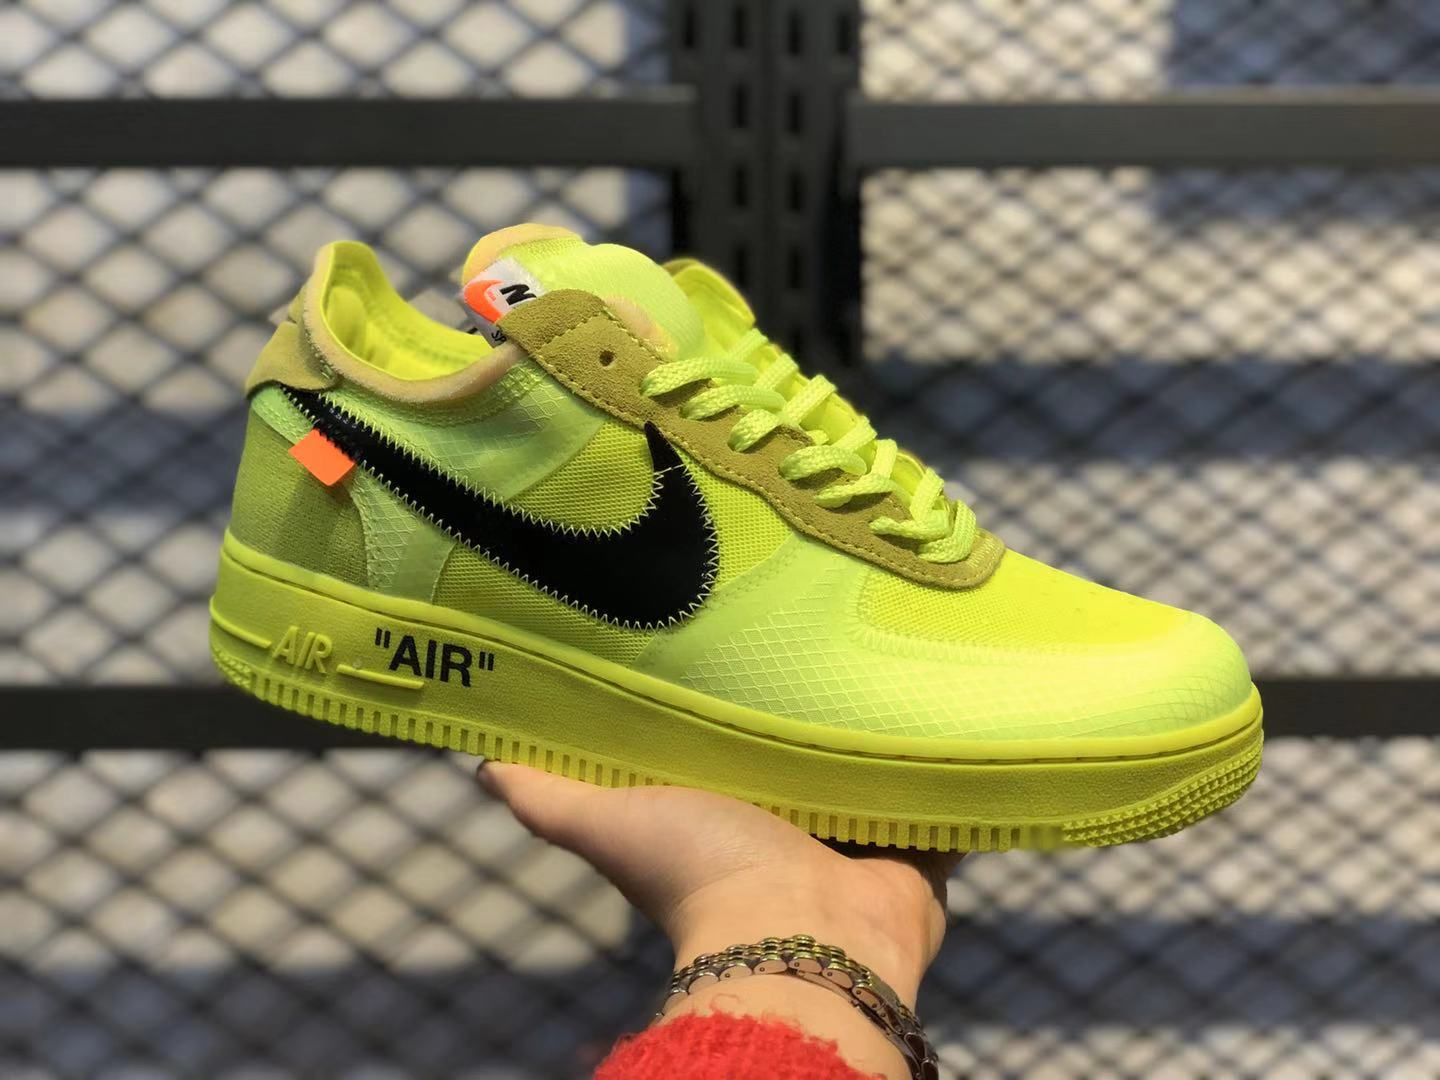 Off-White x Nike Air Force 1 Low Volt/Cone-Black-Hyper Jade AO4606-700